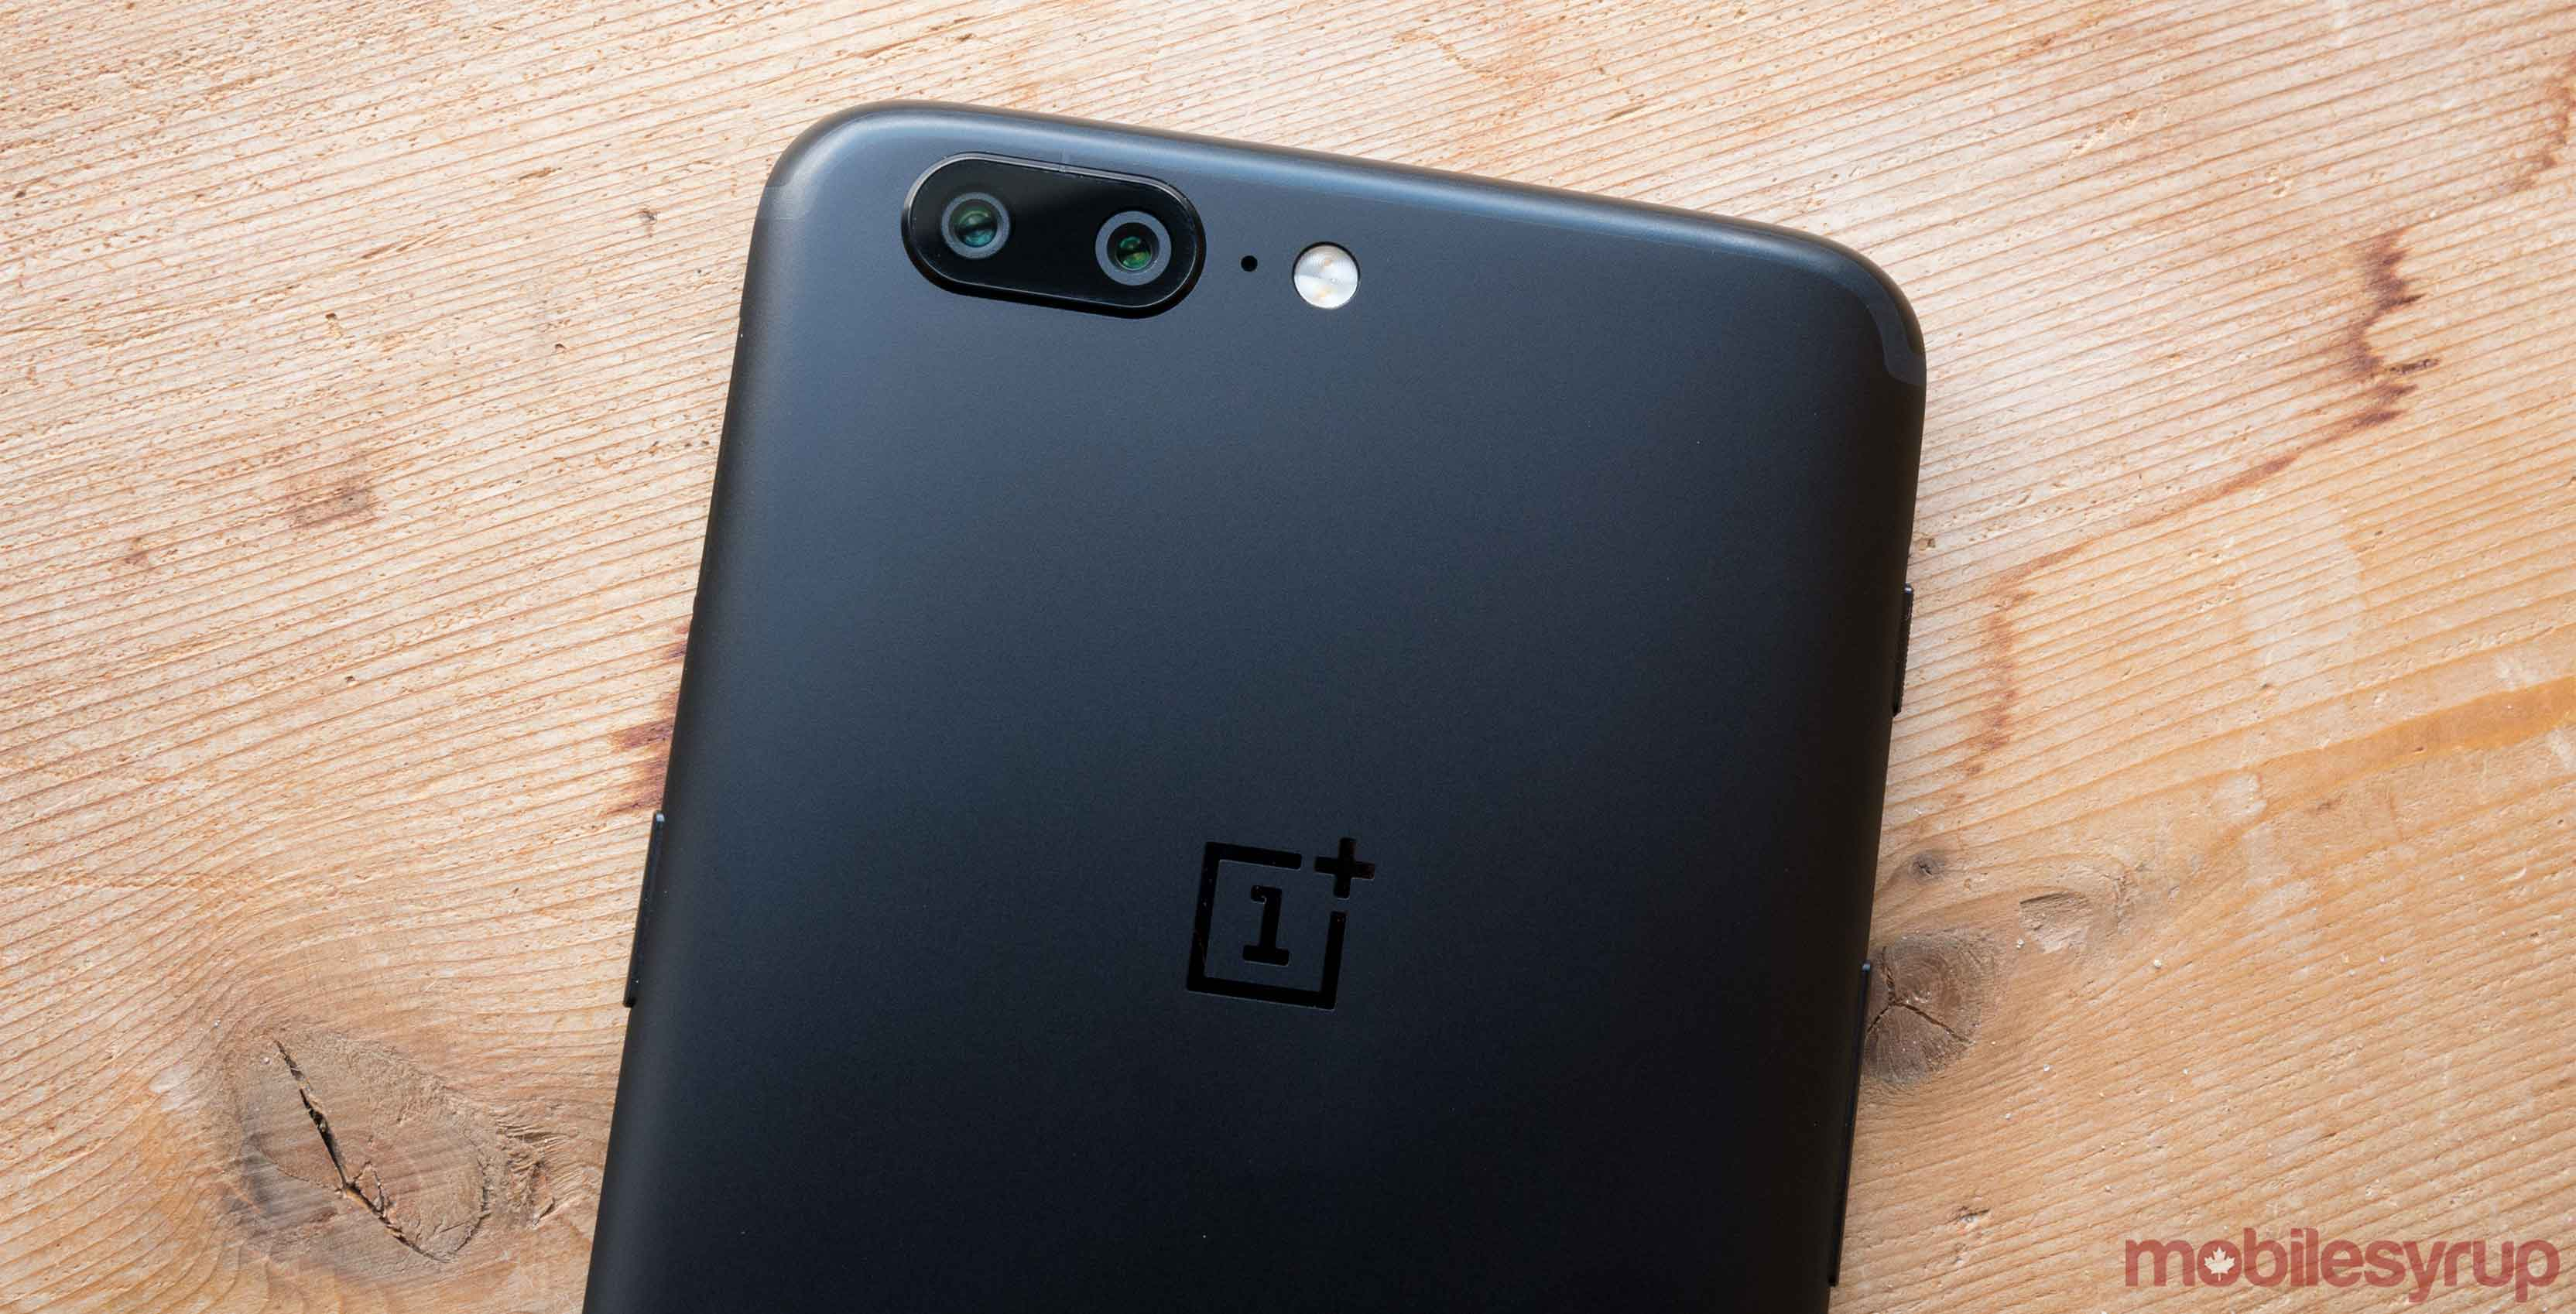 OnePlus 5 now available at 10 percent discount for students